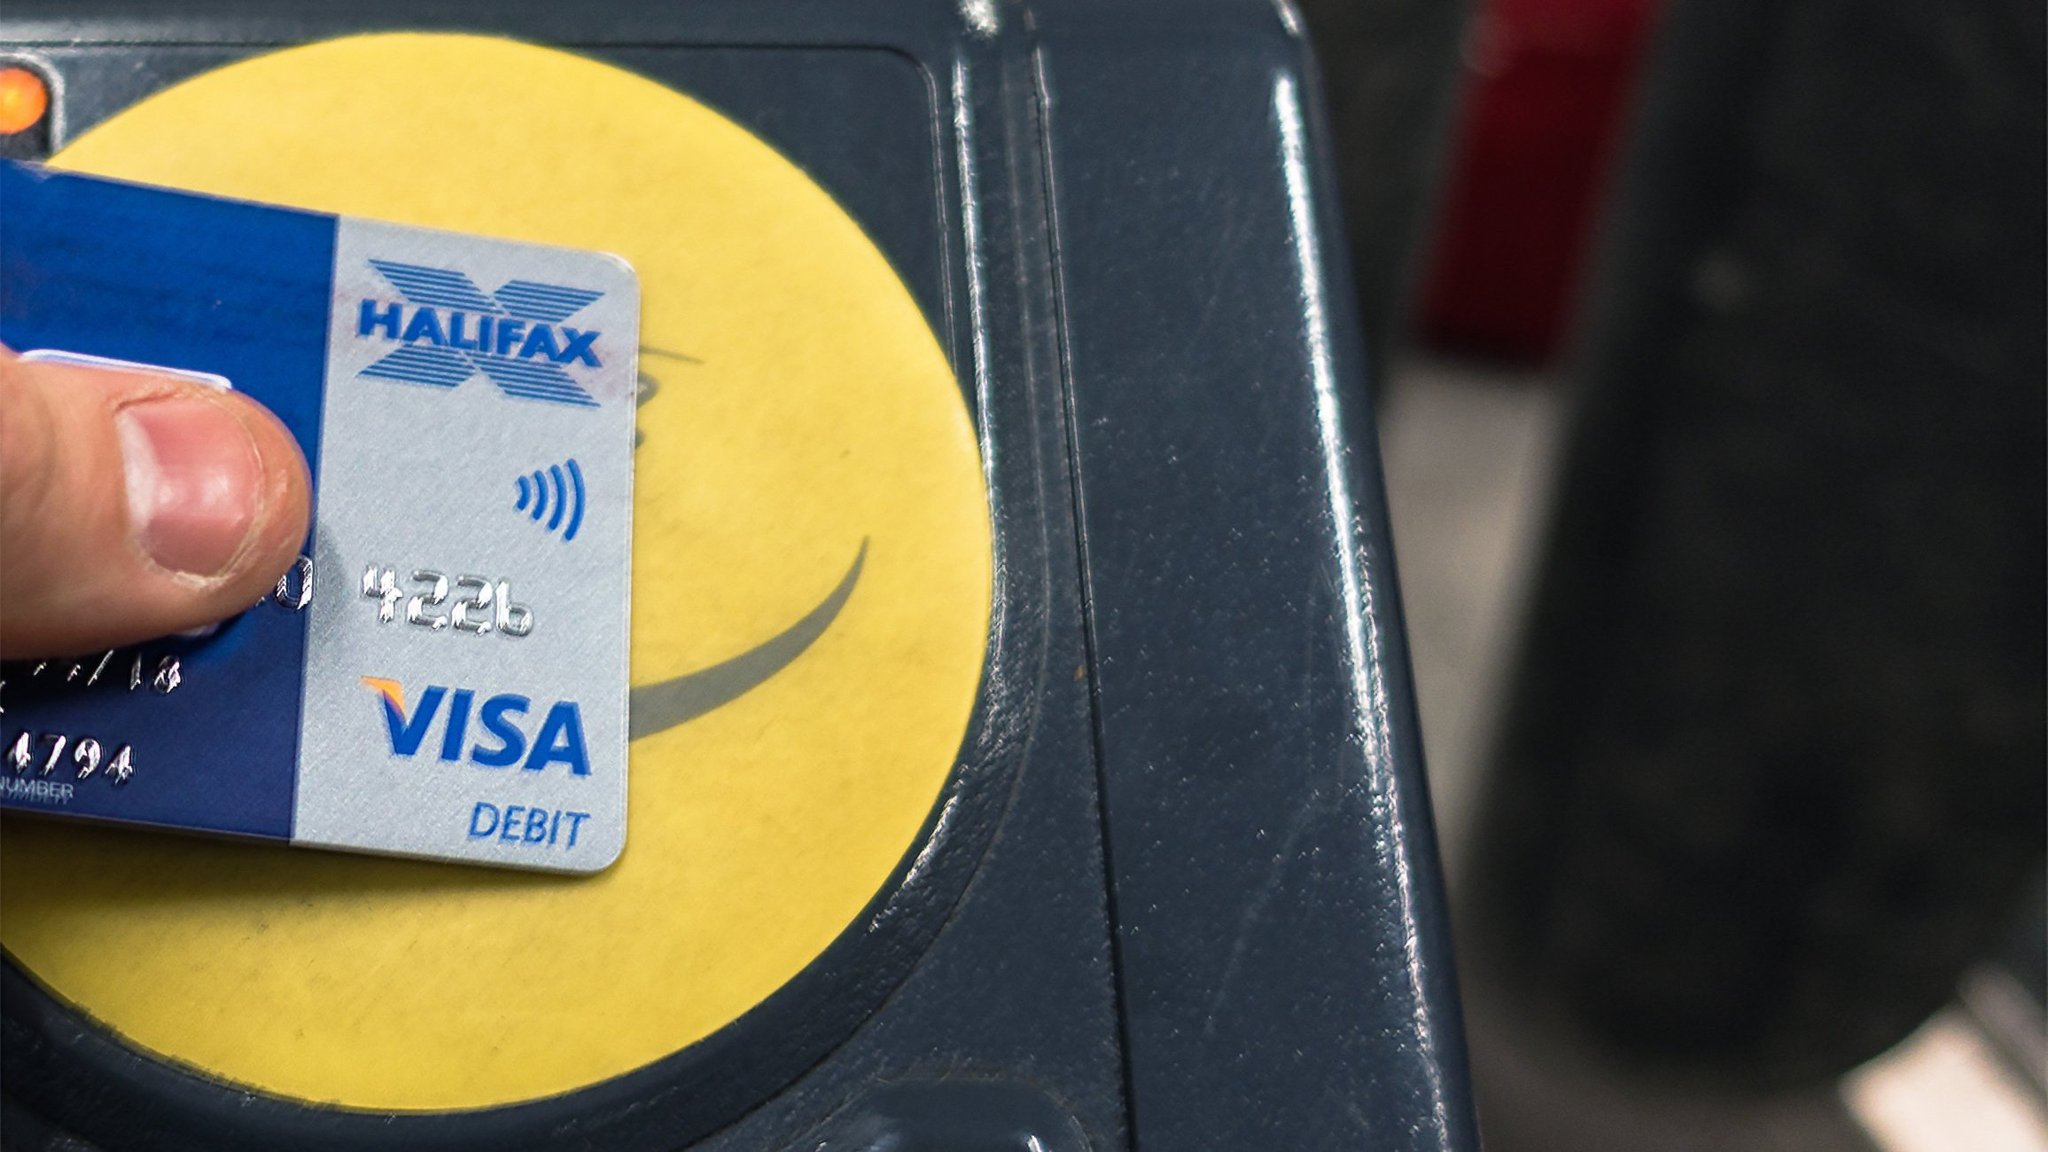 Why visitors mostly use Oyster cards and not Contactless payment cards